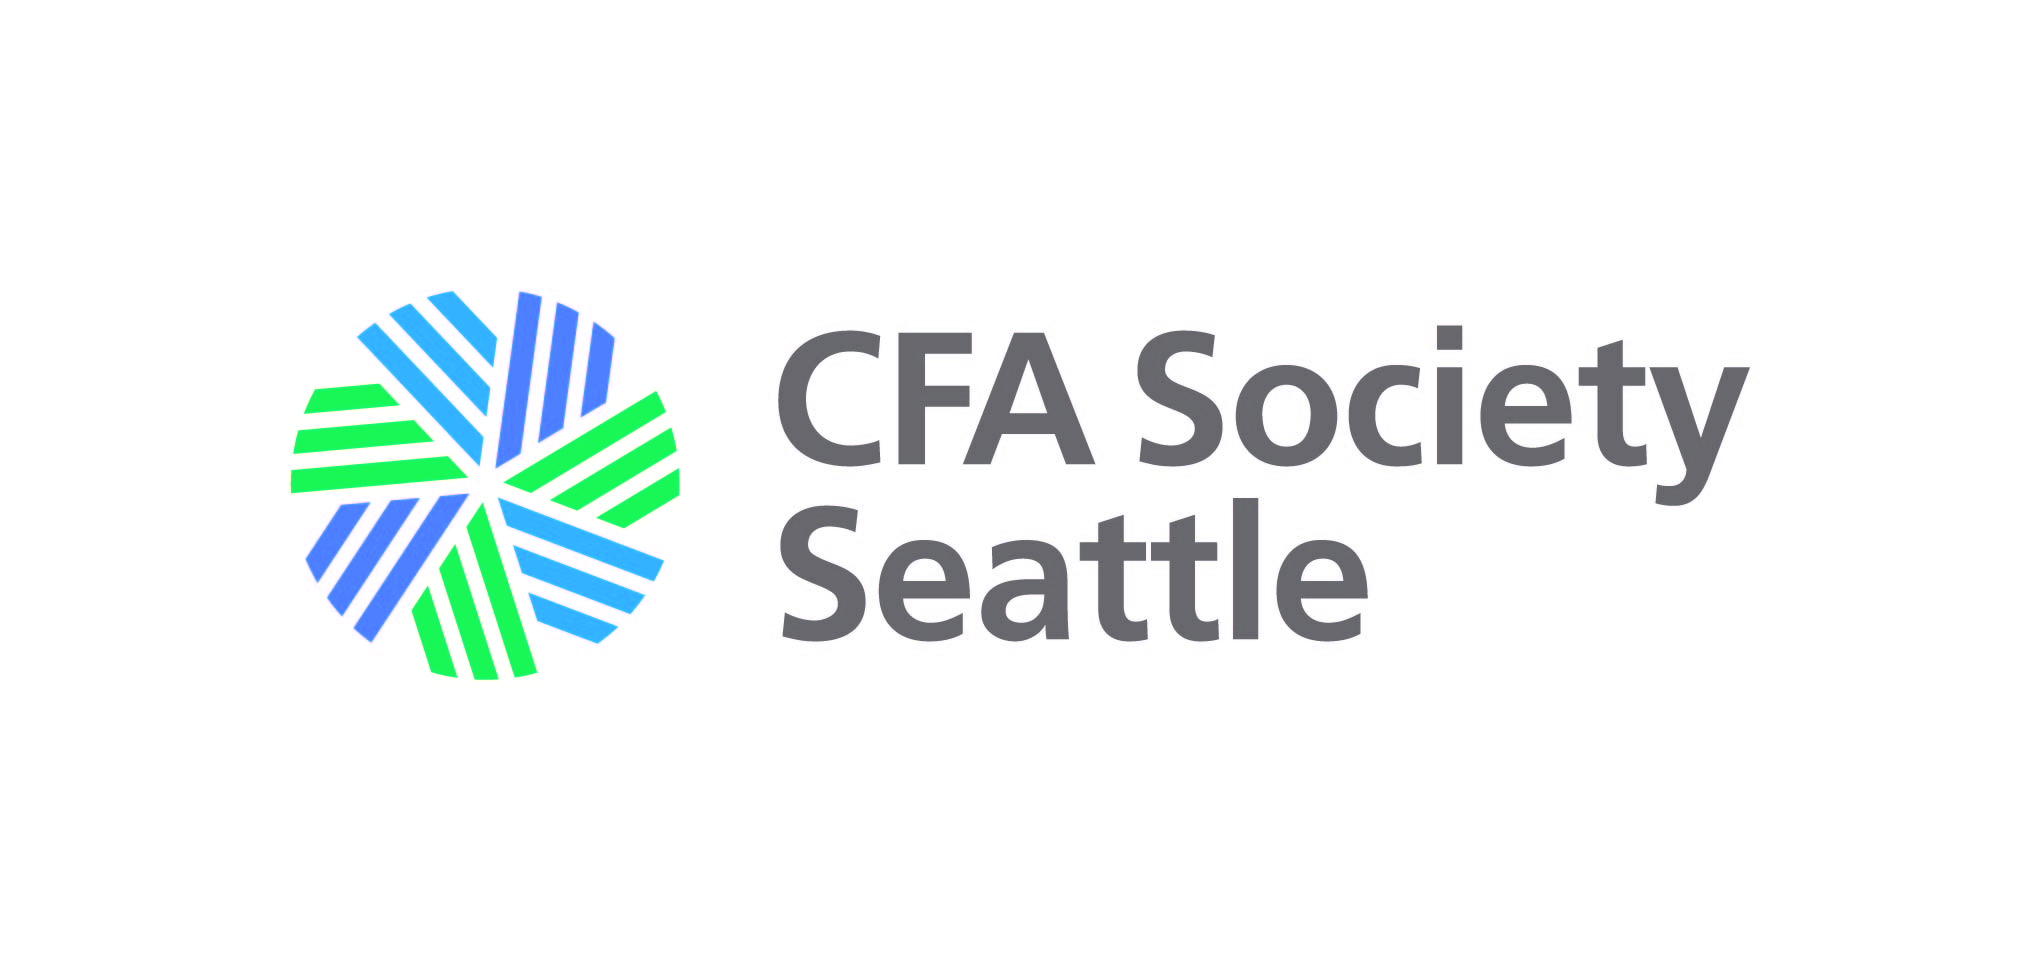 2-18-21 Exclusive CFA Society Seattle Member Event: The Washington update with Jeff Bush